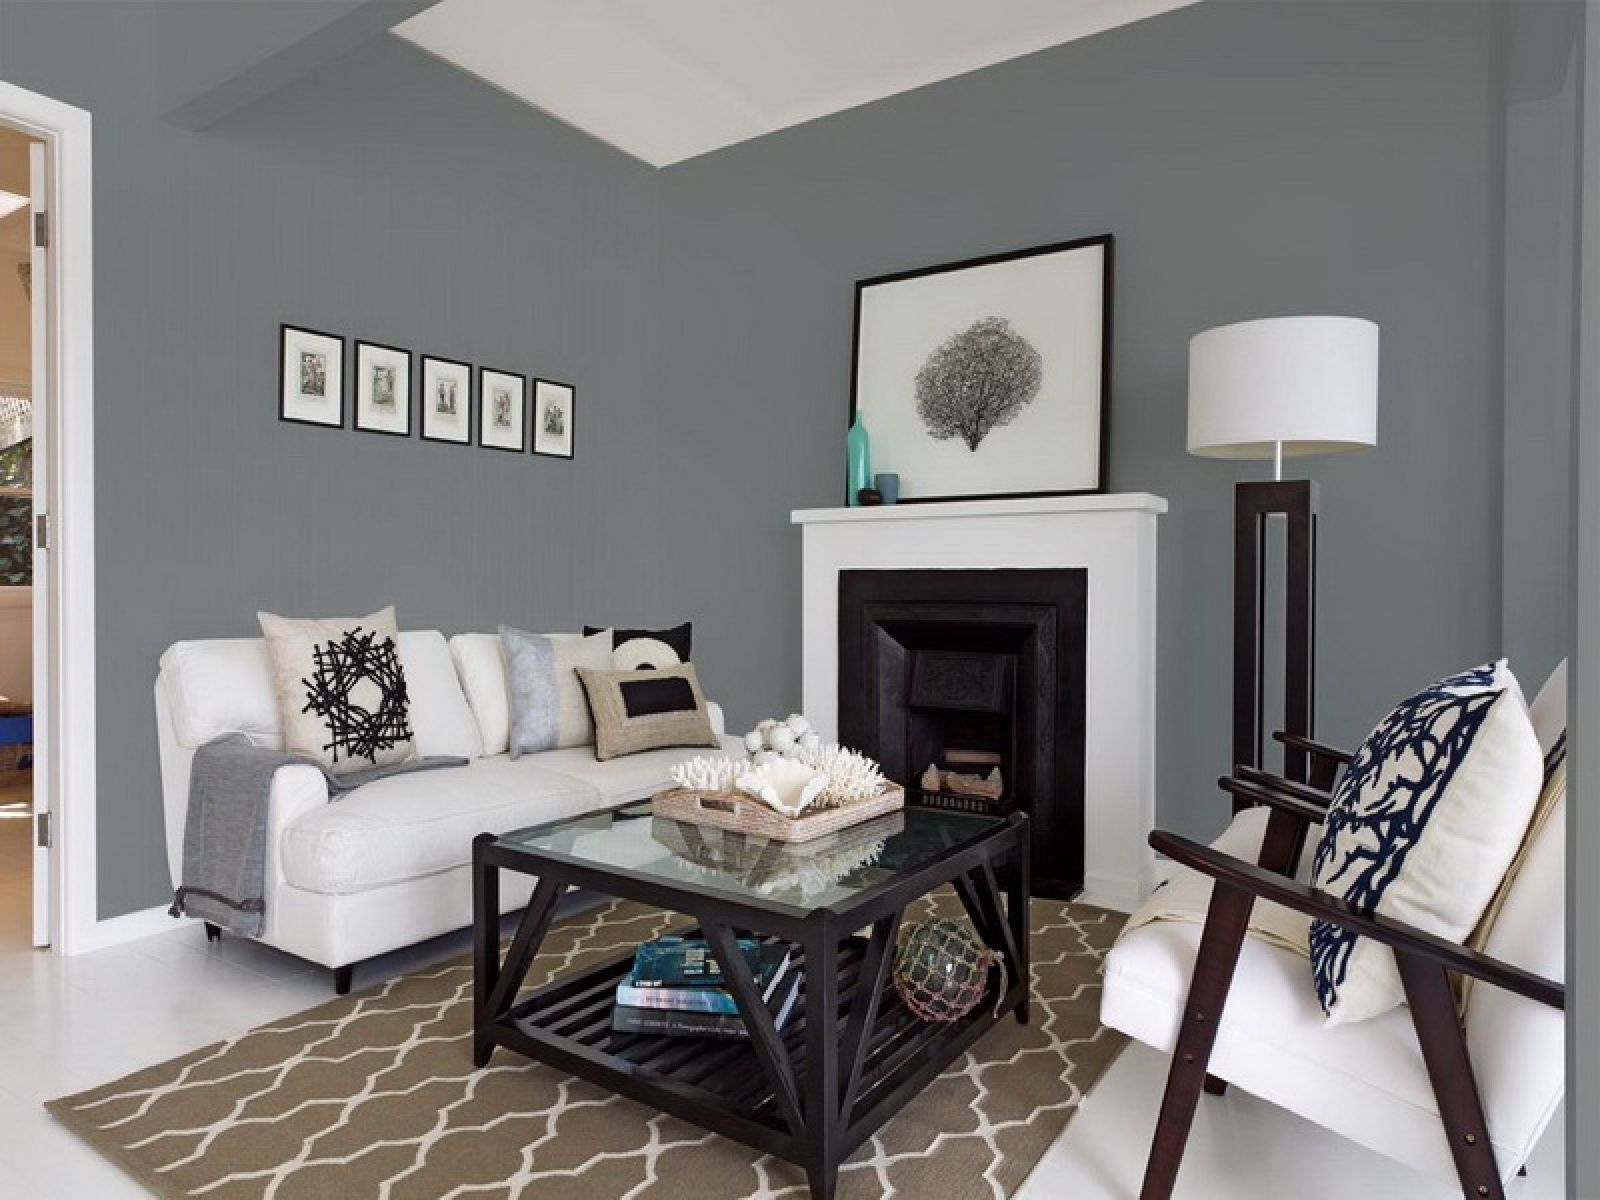 Bedroom Colors Grey Blue ways to decorate grey living rooms | white fireplace mantels, gray